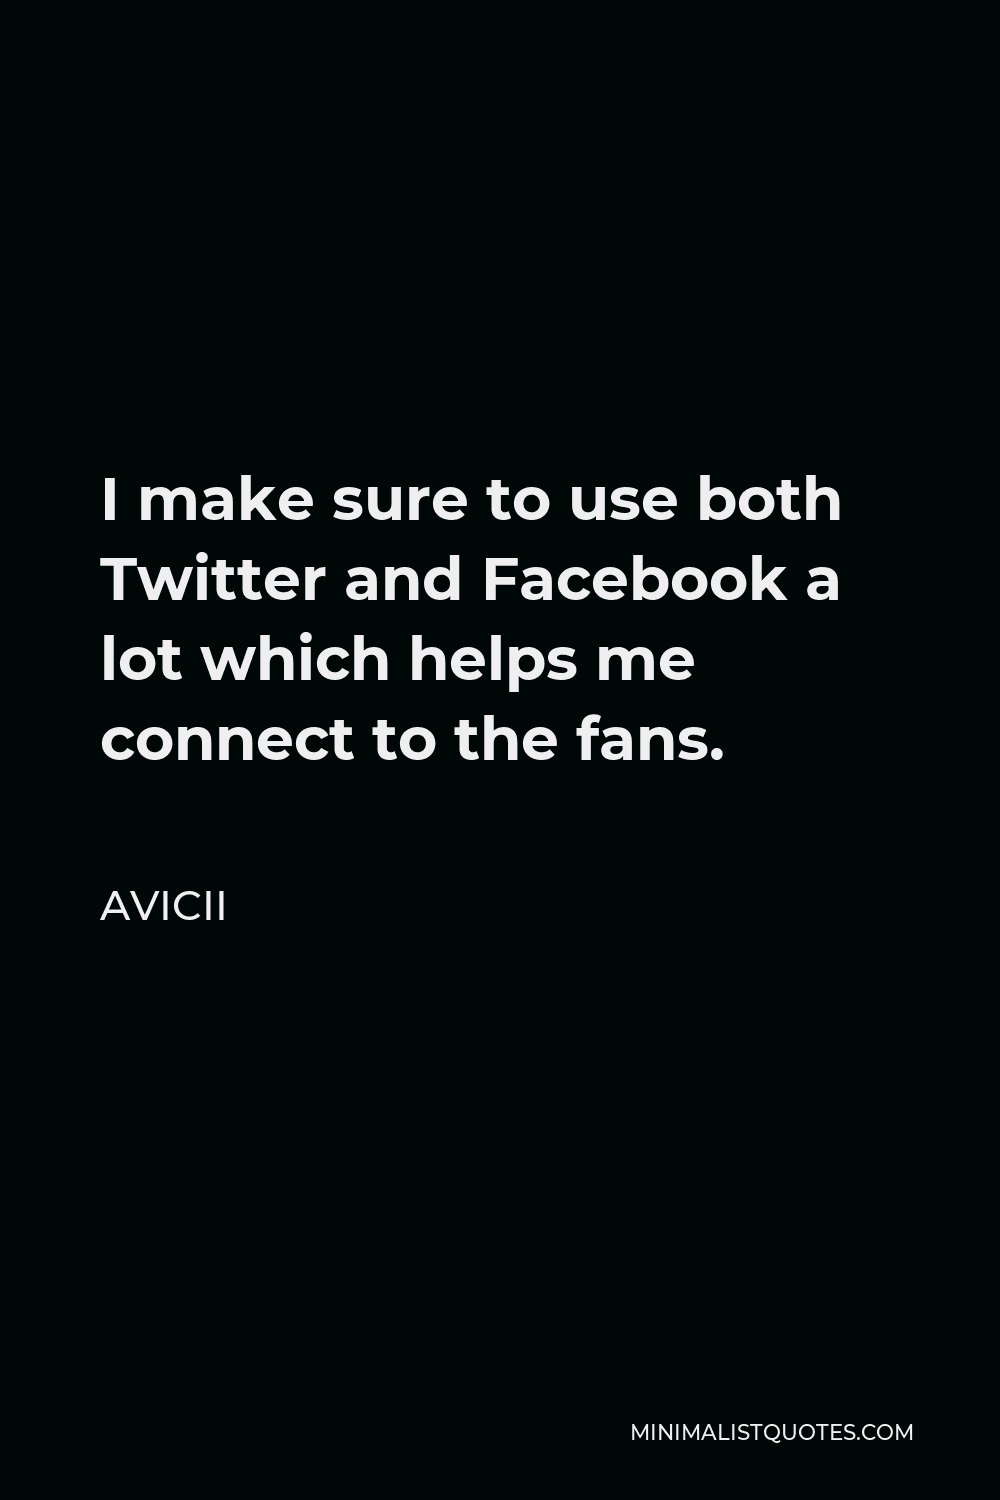 Avicii Quote - I make sure to use both Twitter and Facebook a lot which helps me connect to the fans.